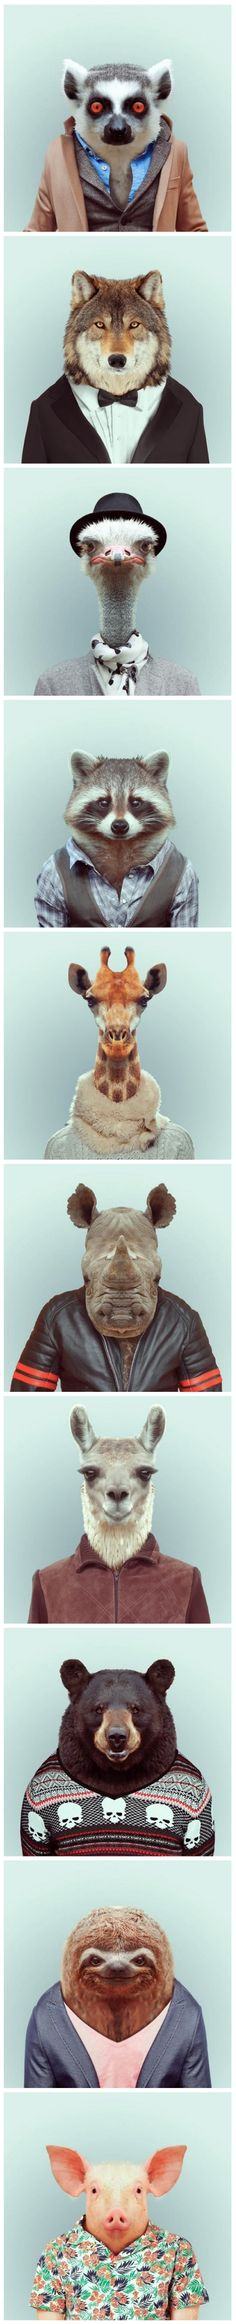 Animals in clothes. This oddly reminds me of Fantastic Mr. Fox. Hmmm